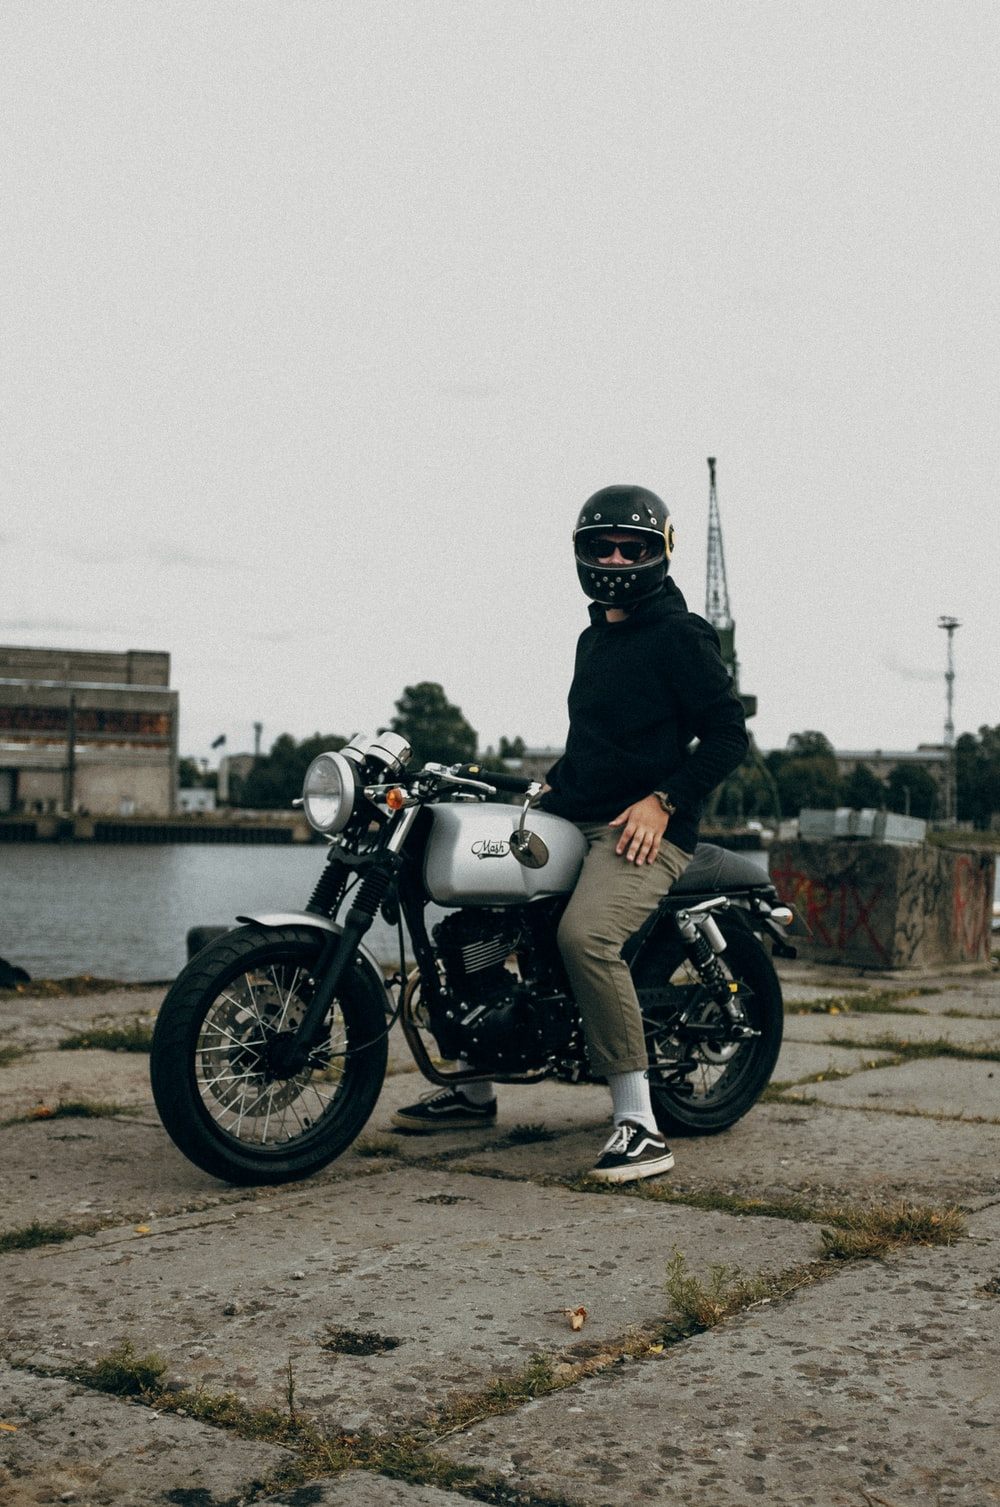 man in black helmet riding on white and black motorcycle